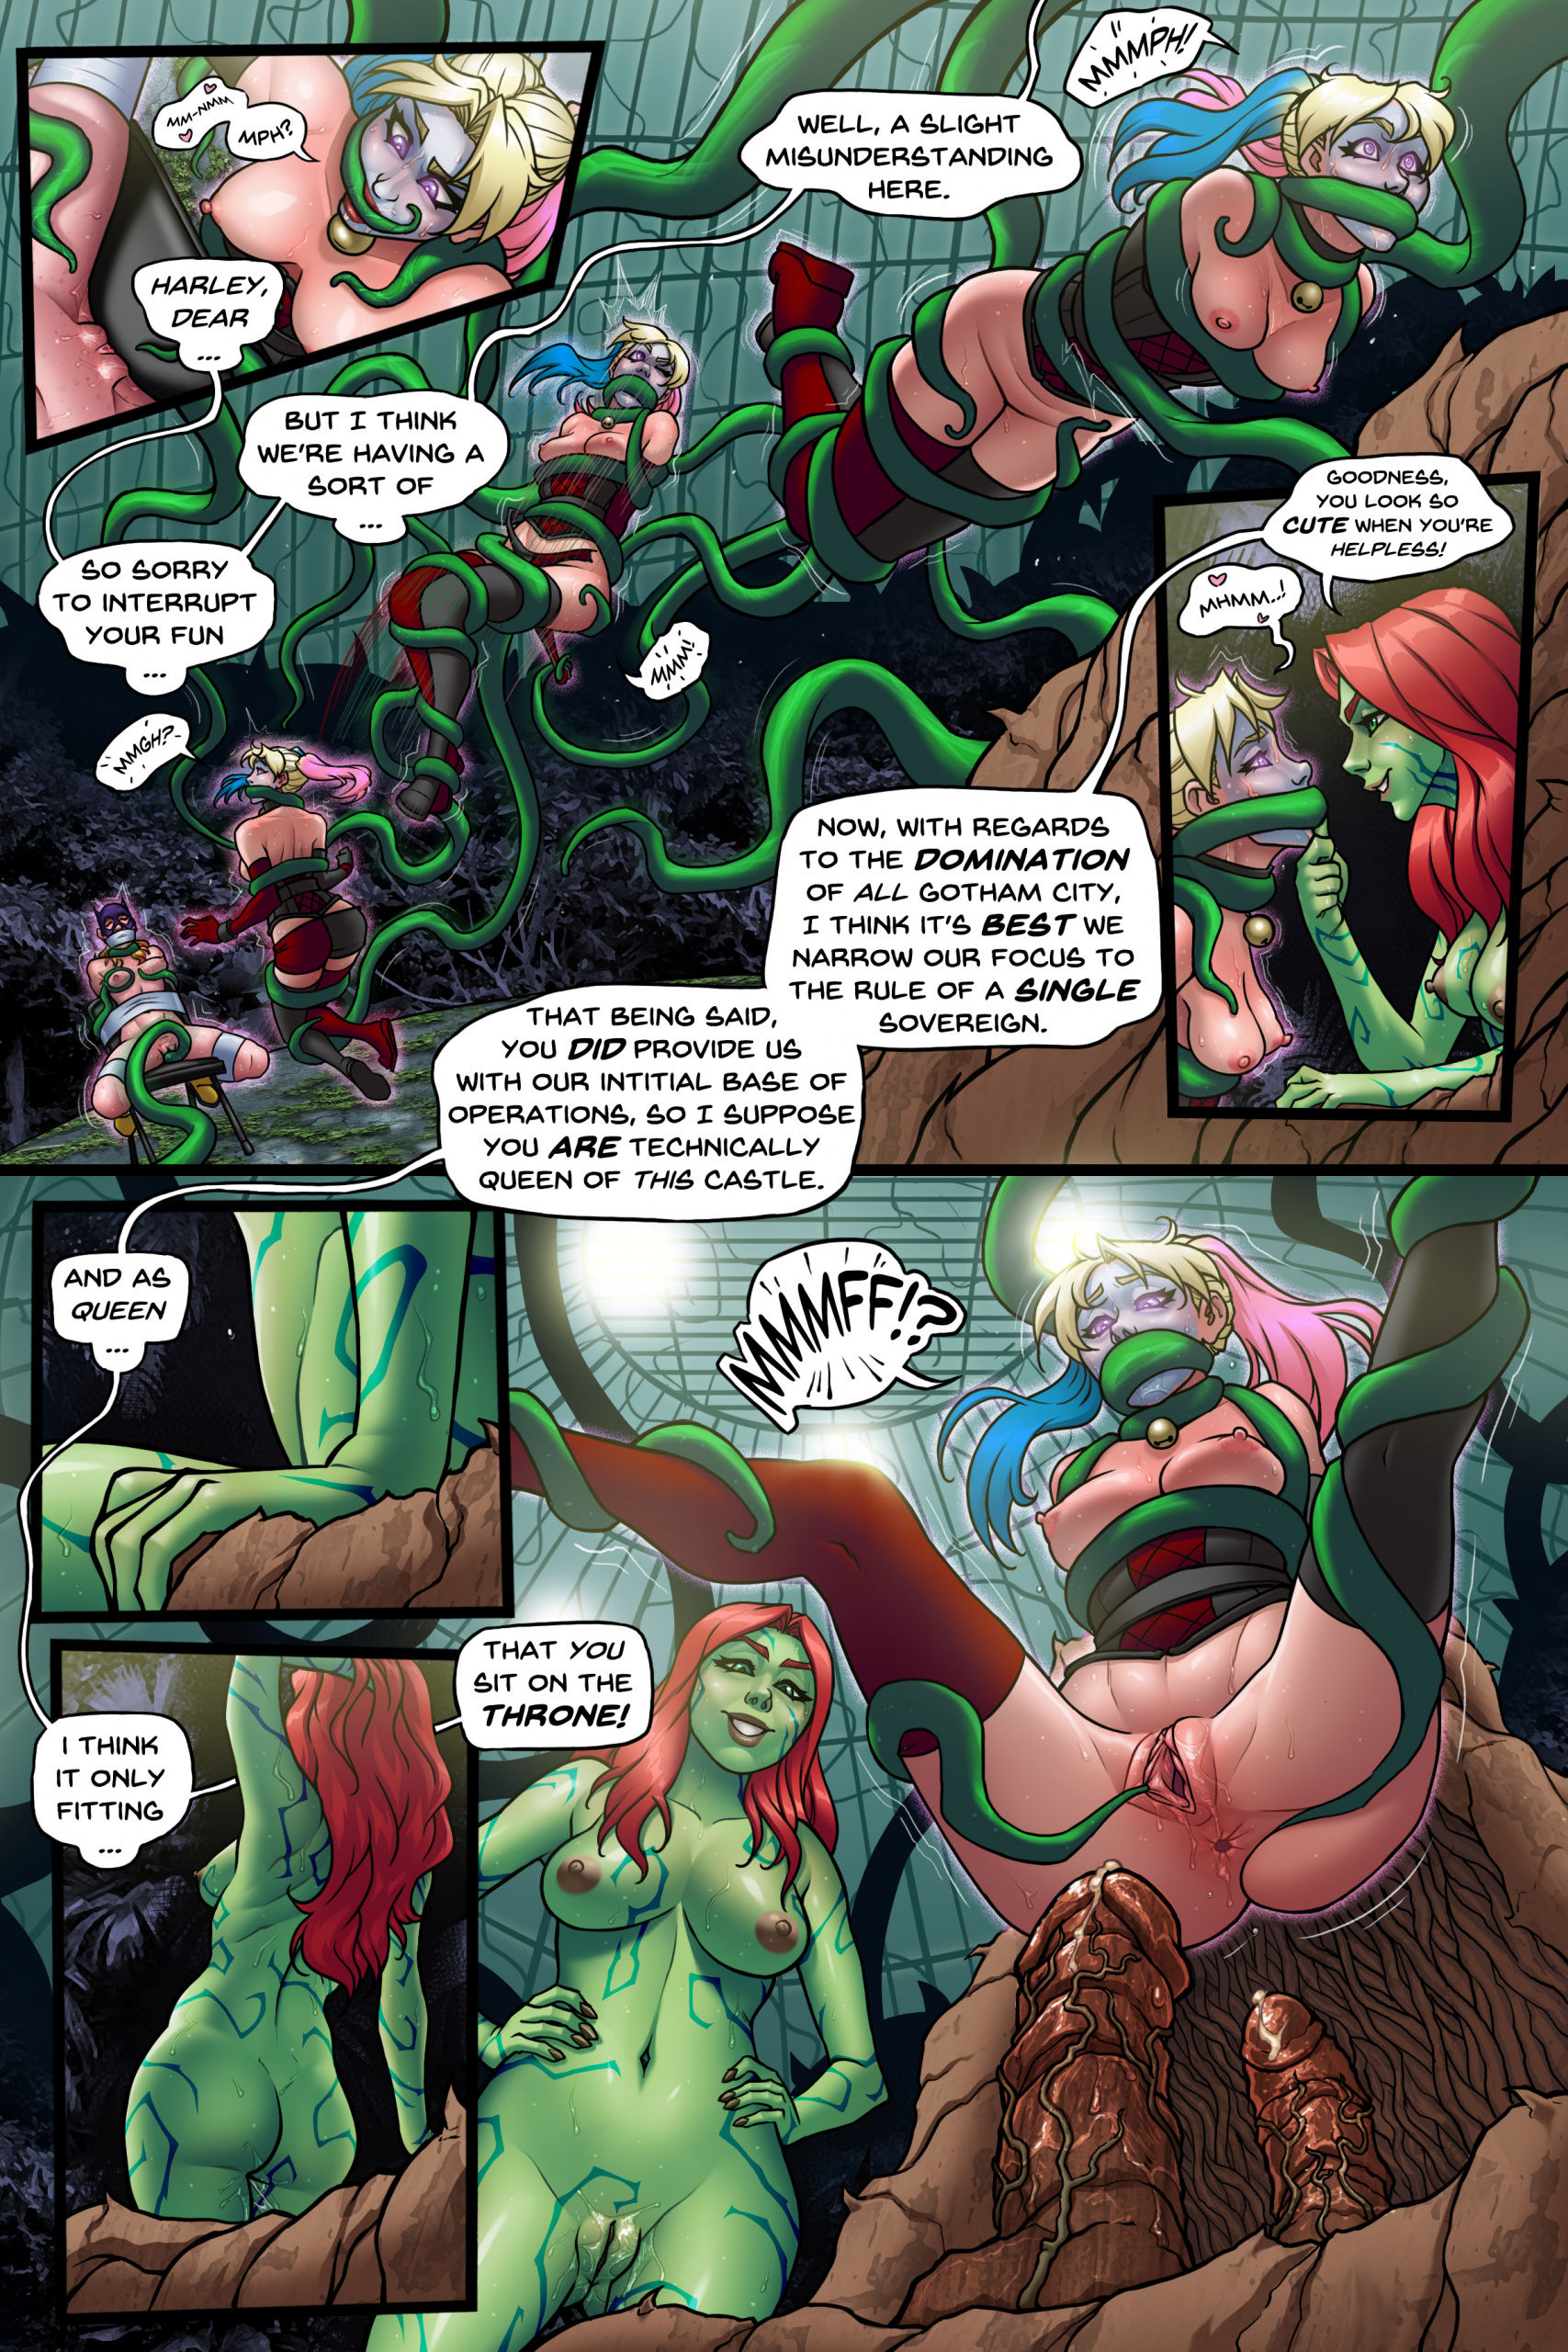 Little shop of harley porn comic picture 17